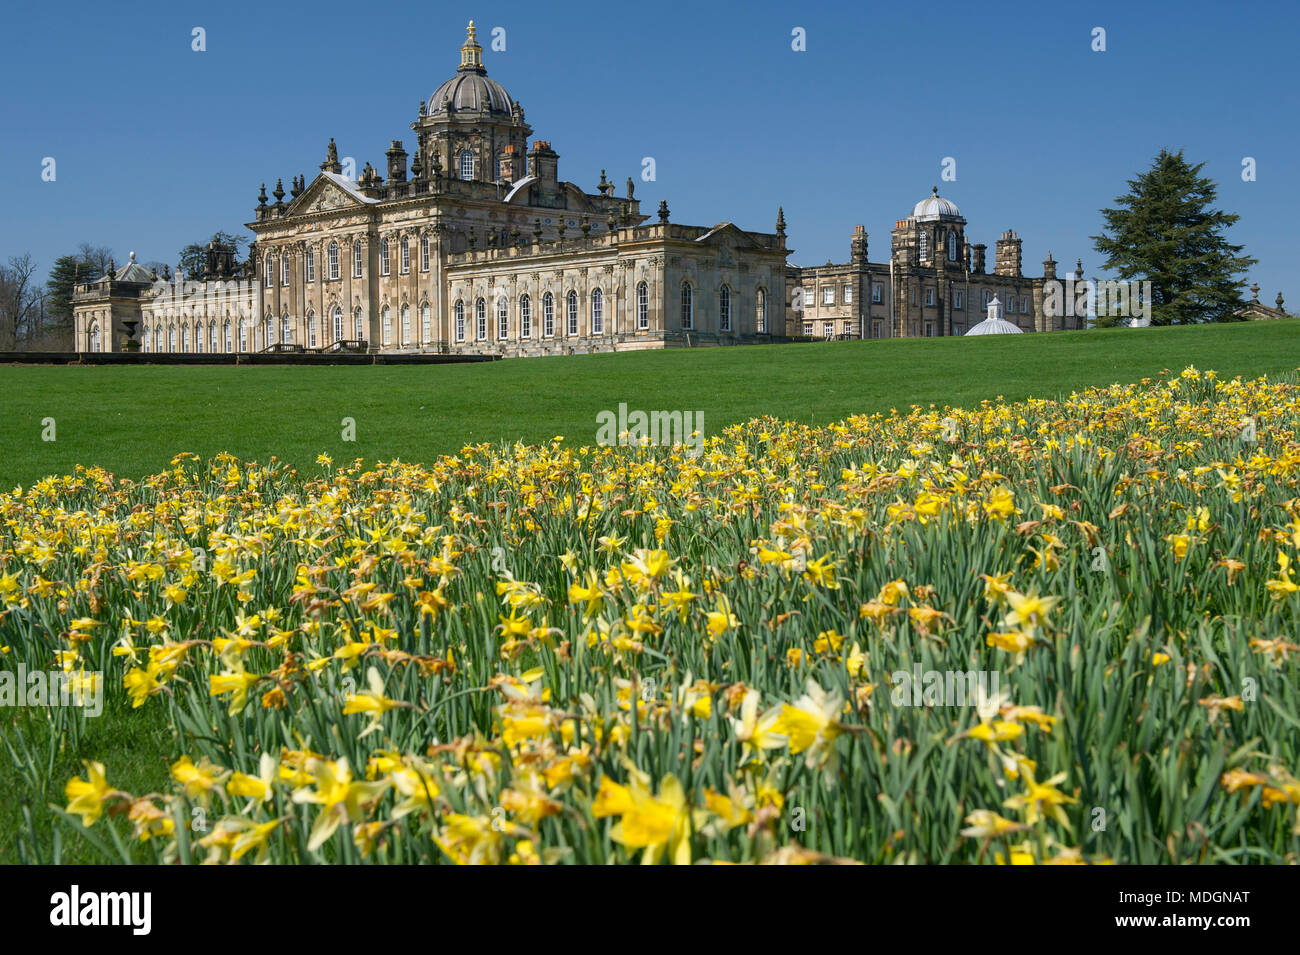 Castle Howard house and gardens which are a popular tourist attraction in North Yorkshire - Stock Image